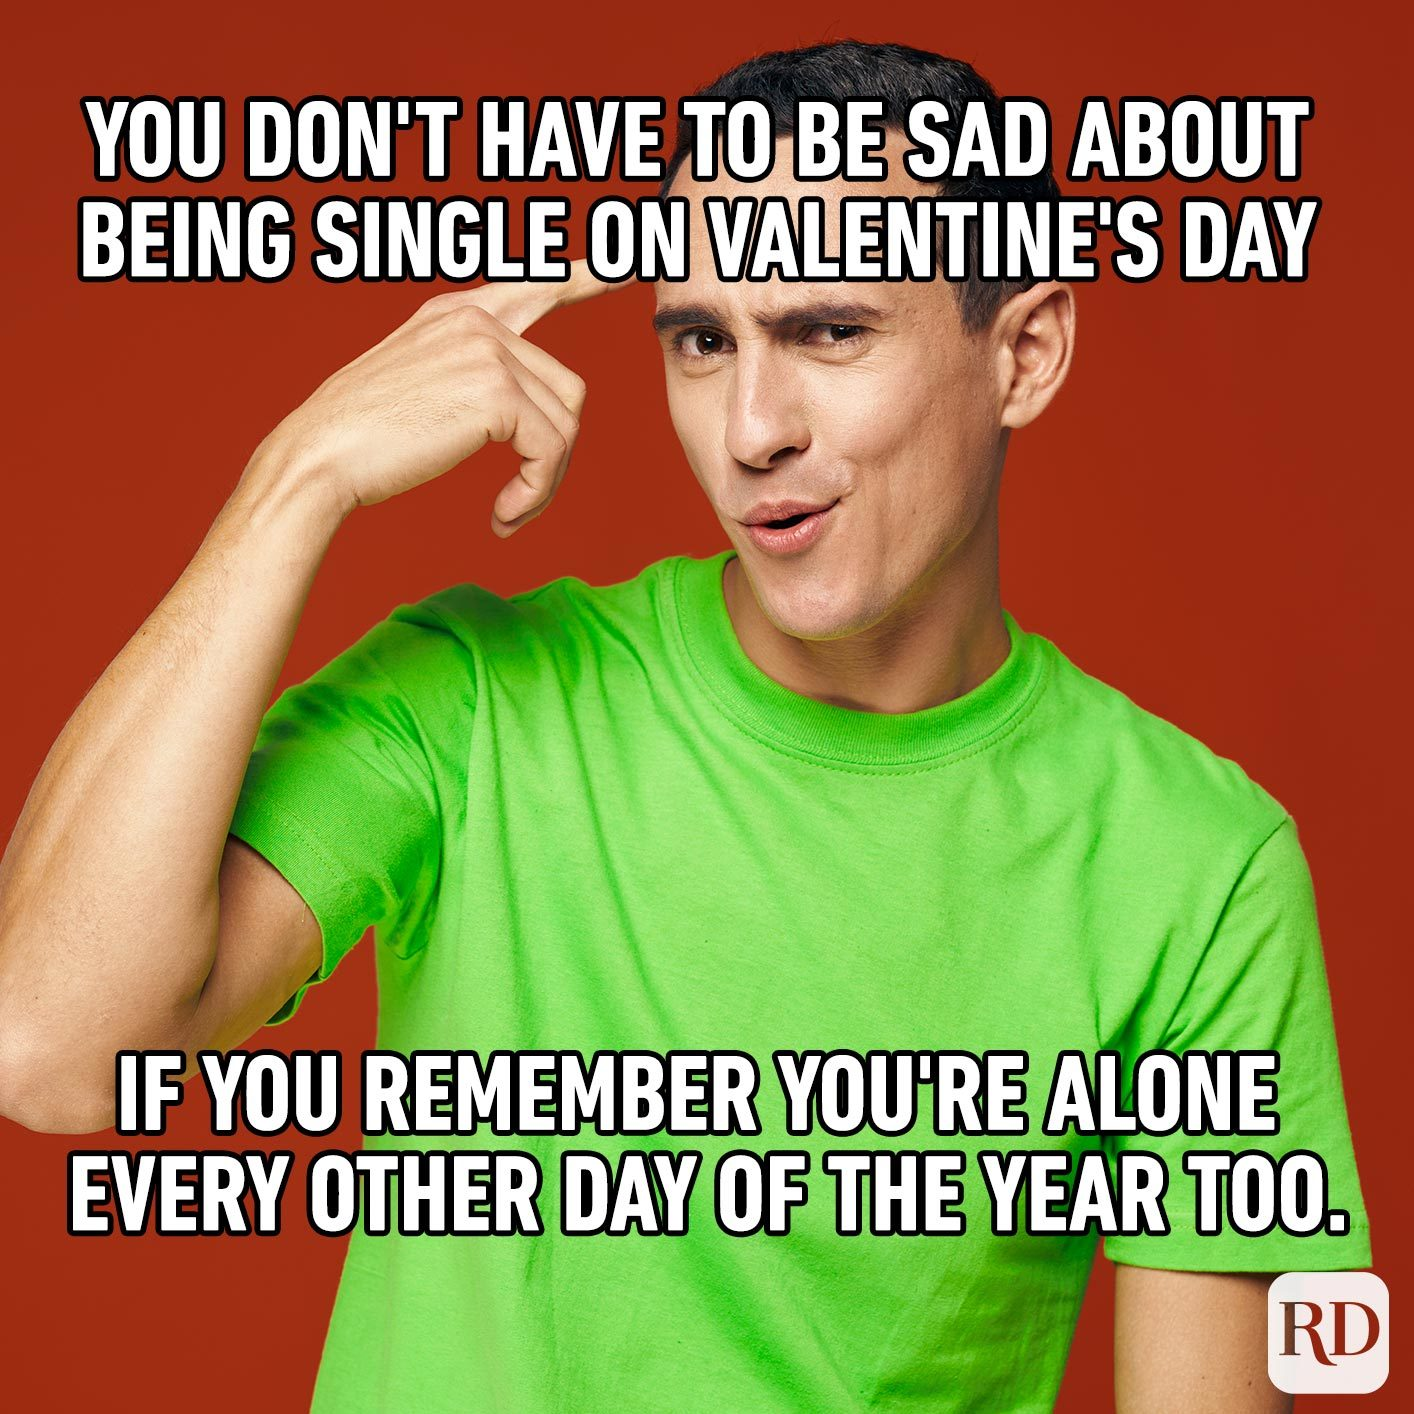 Man pointing to his head as if he has a great idea. Meme text: You don't have to be sad about being single on Valentine's Day if you remember you're alone every other day of the year too